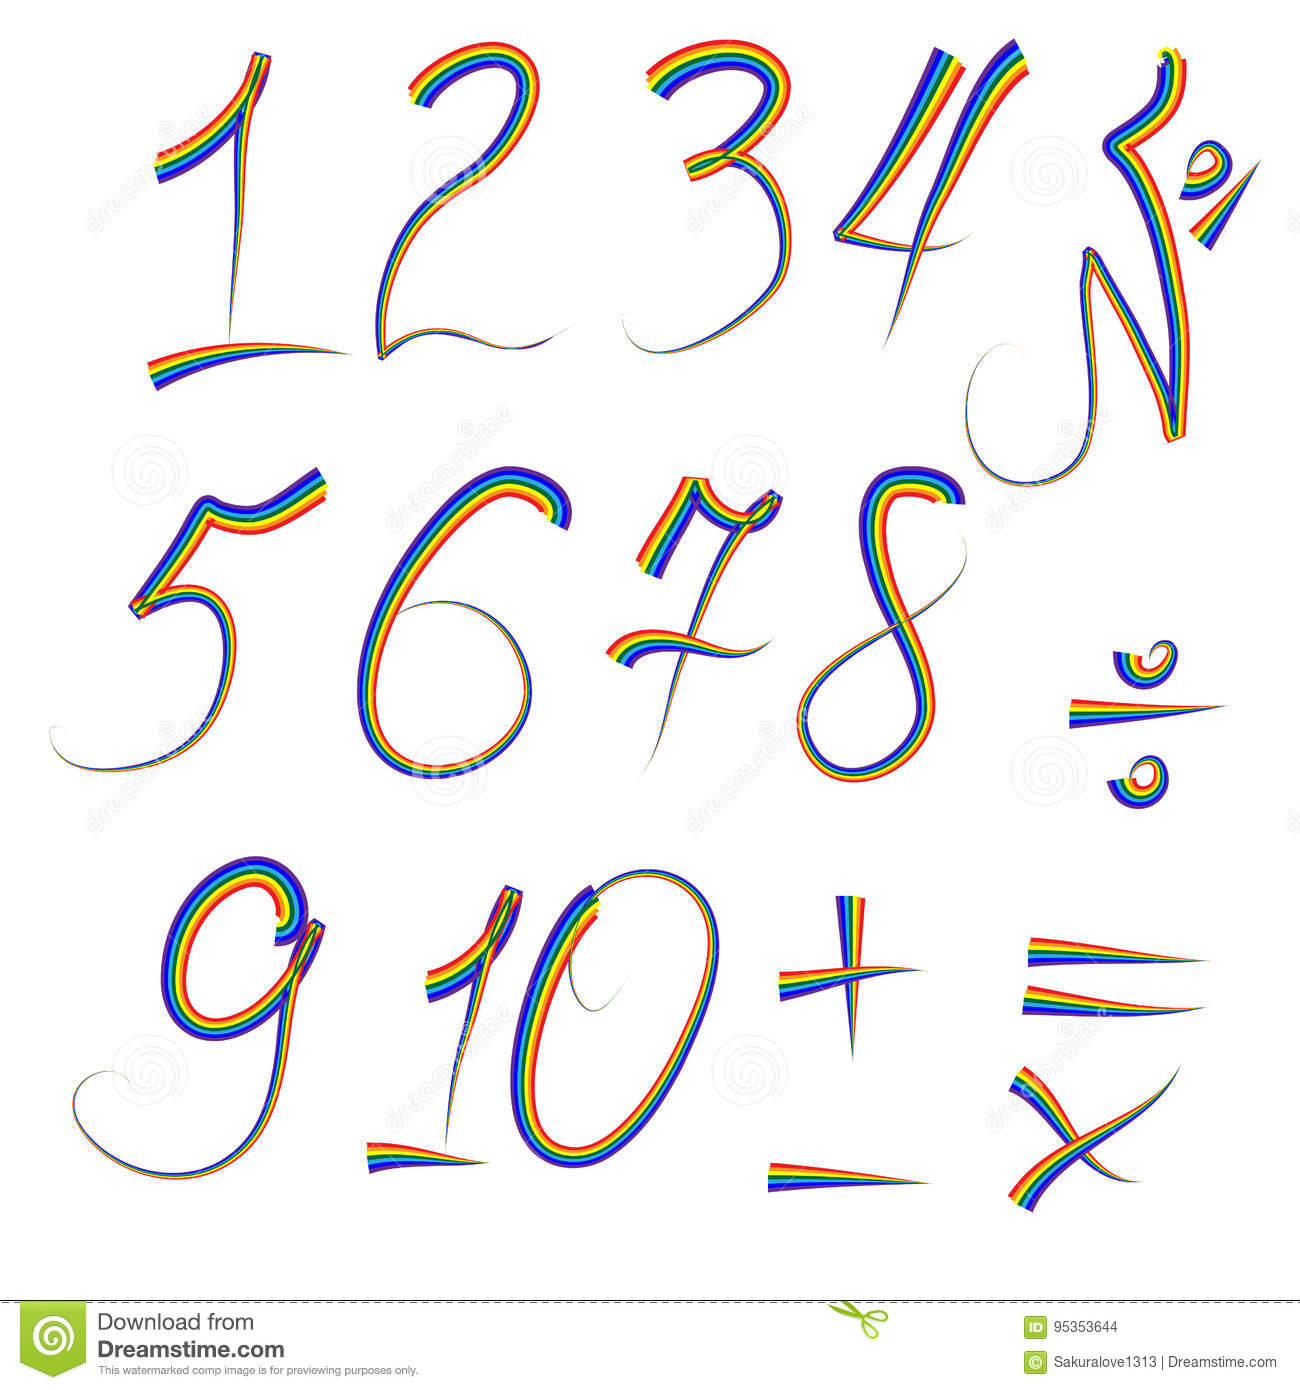 A Set Of Digits From One To Ten Written In An Iridescent